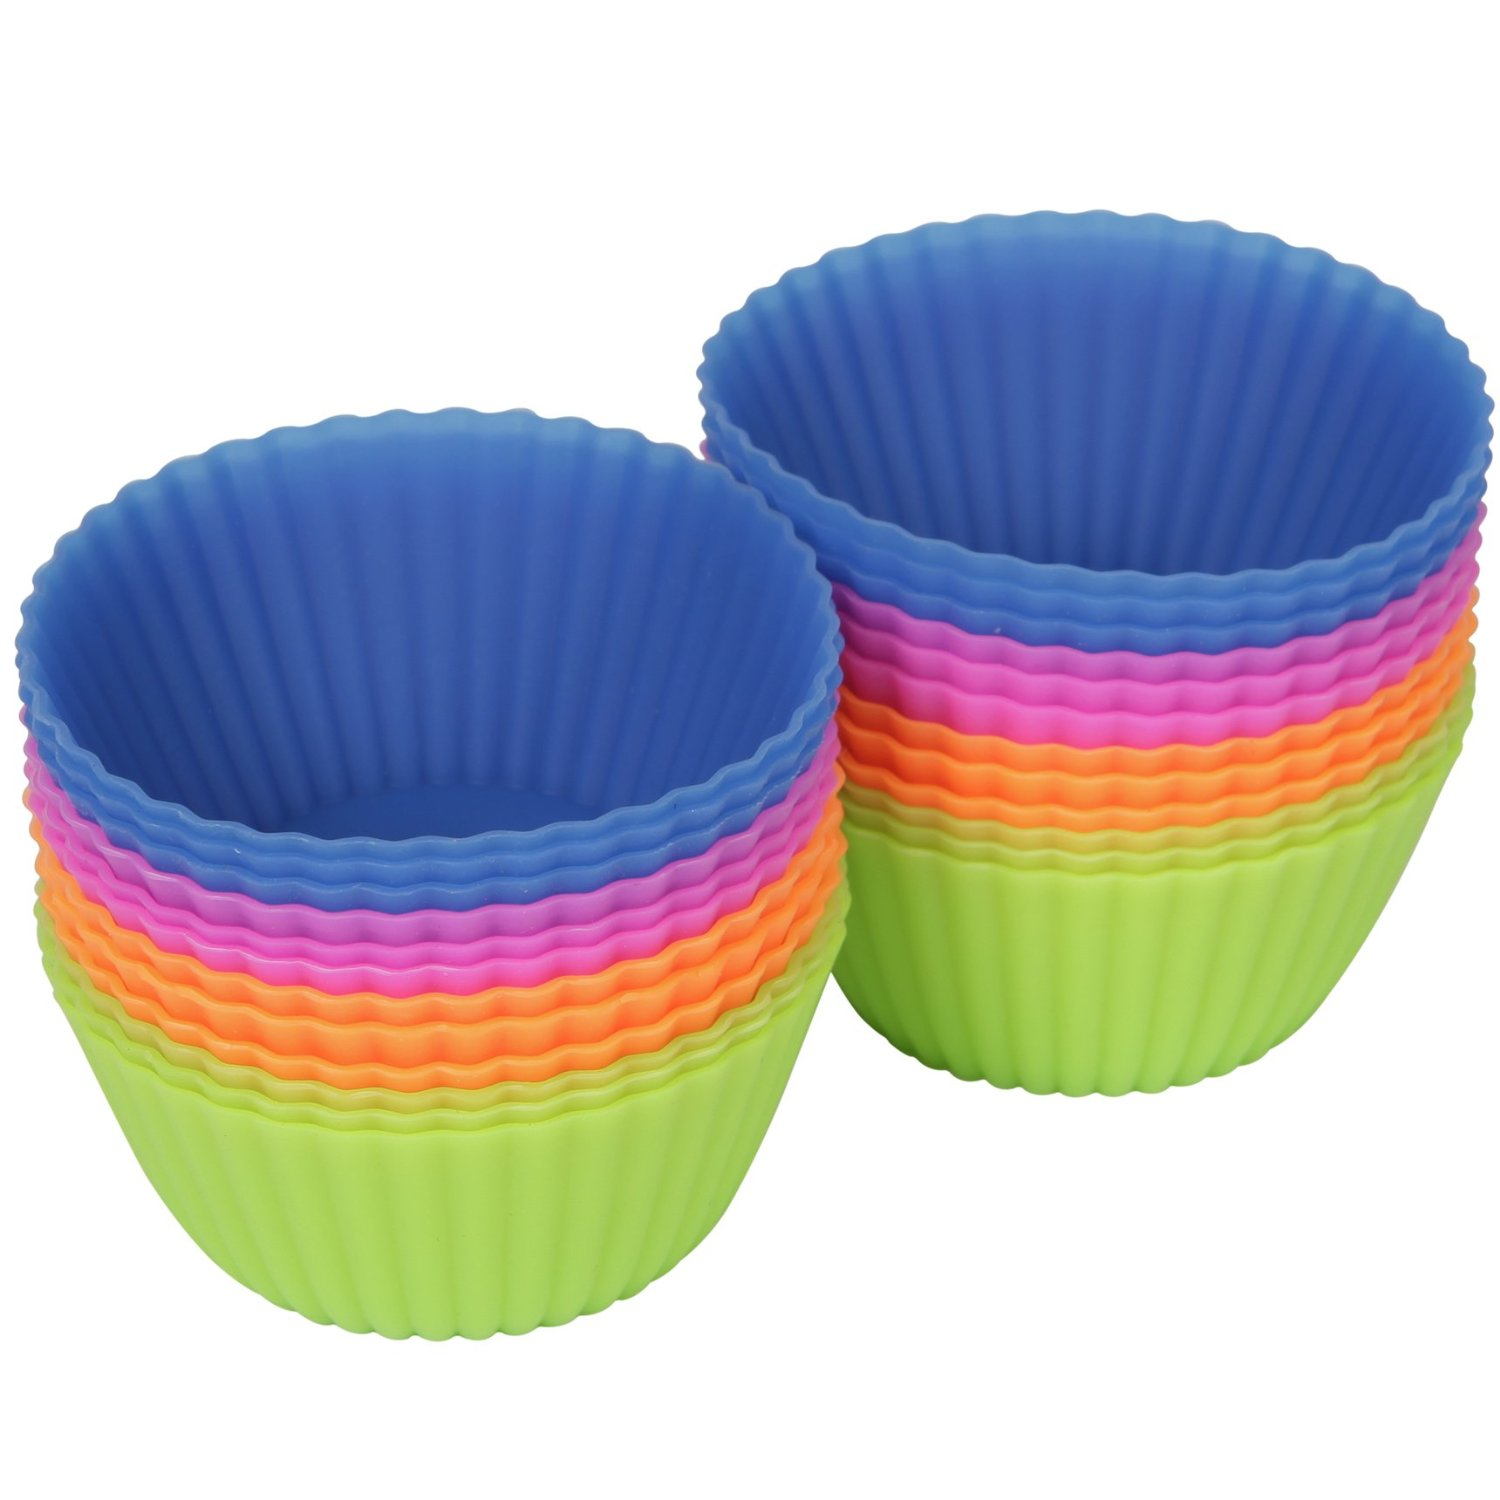 Silicone Baking Cups So Much More Than Just Muffins